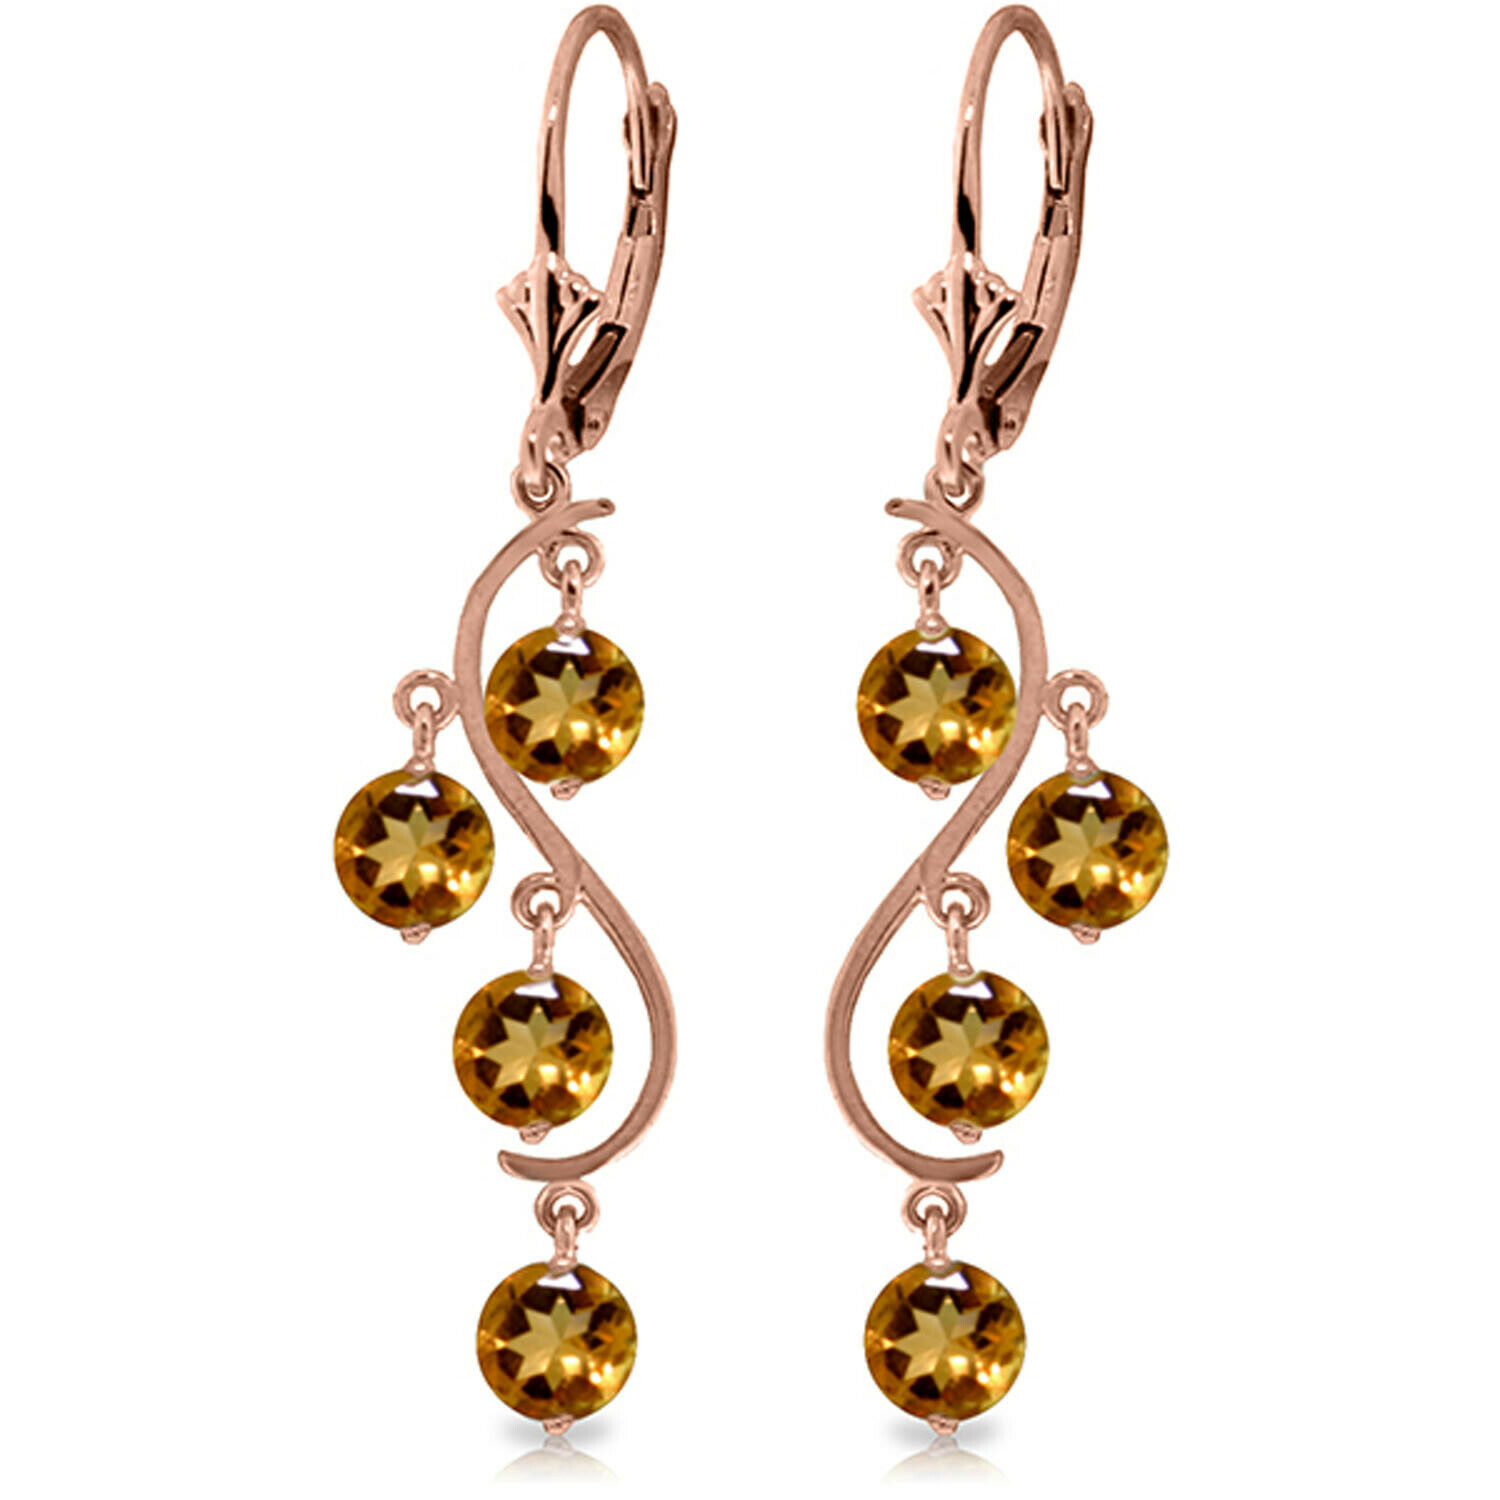 4155a3f5e4530 4.95 CTW Earrings Drop Citrine gold pink Solid 14K fmew9cea51451 ...